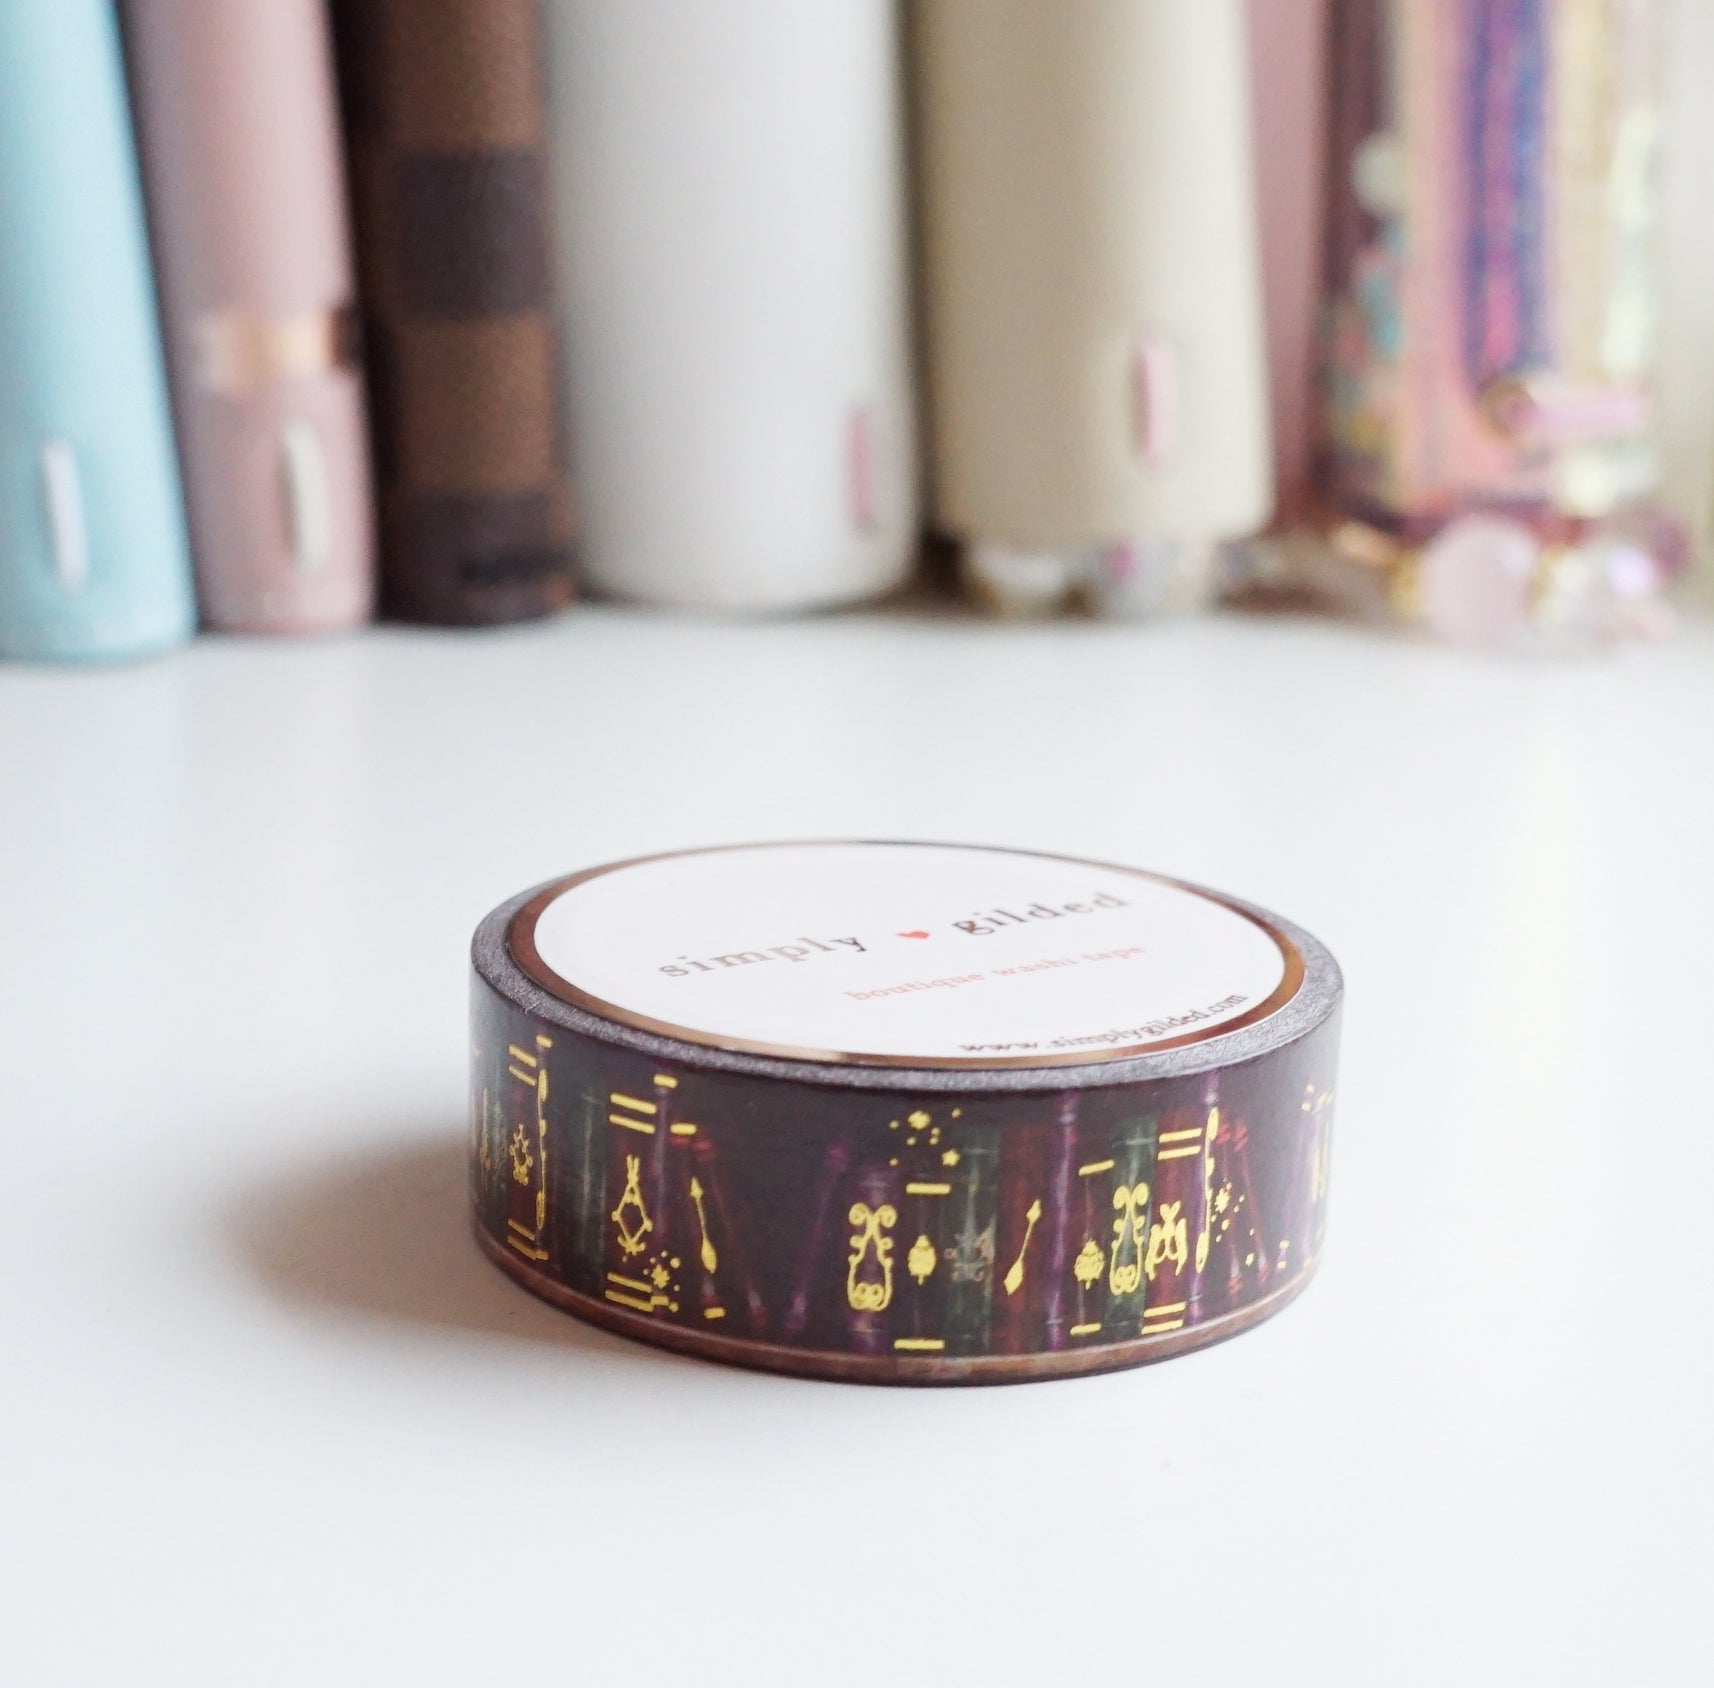 WASHI TAPE 15mm ANTIQUE BOOKS 2.0 + gold foil